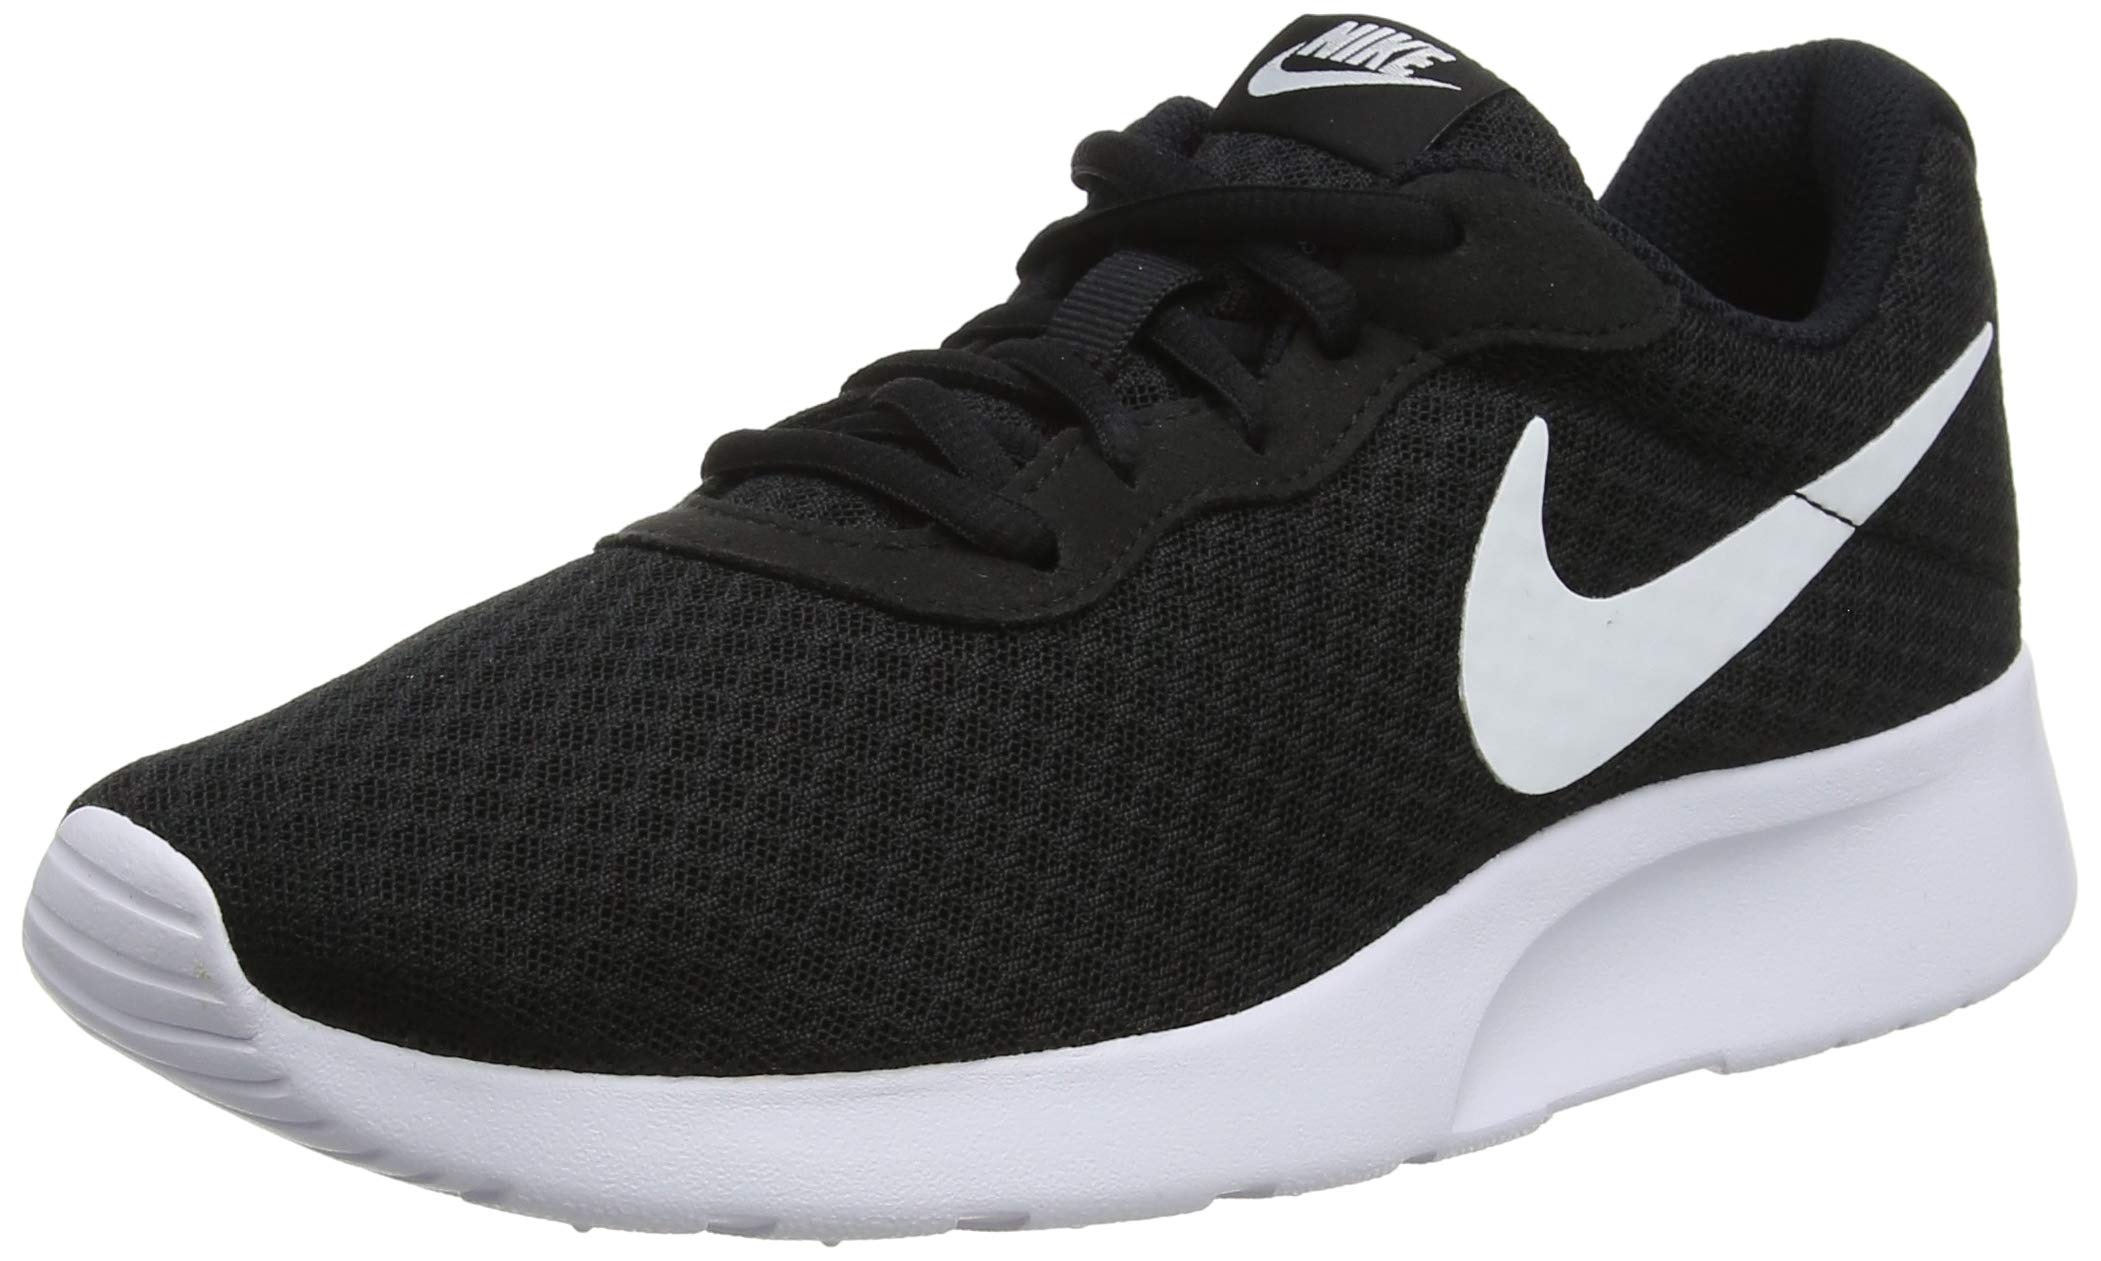 Nike Womens Tanjun Running Sneaker Black/White 8 by Nike